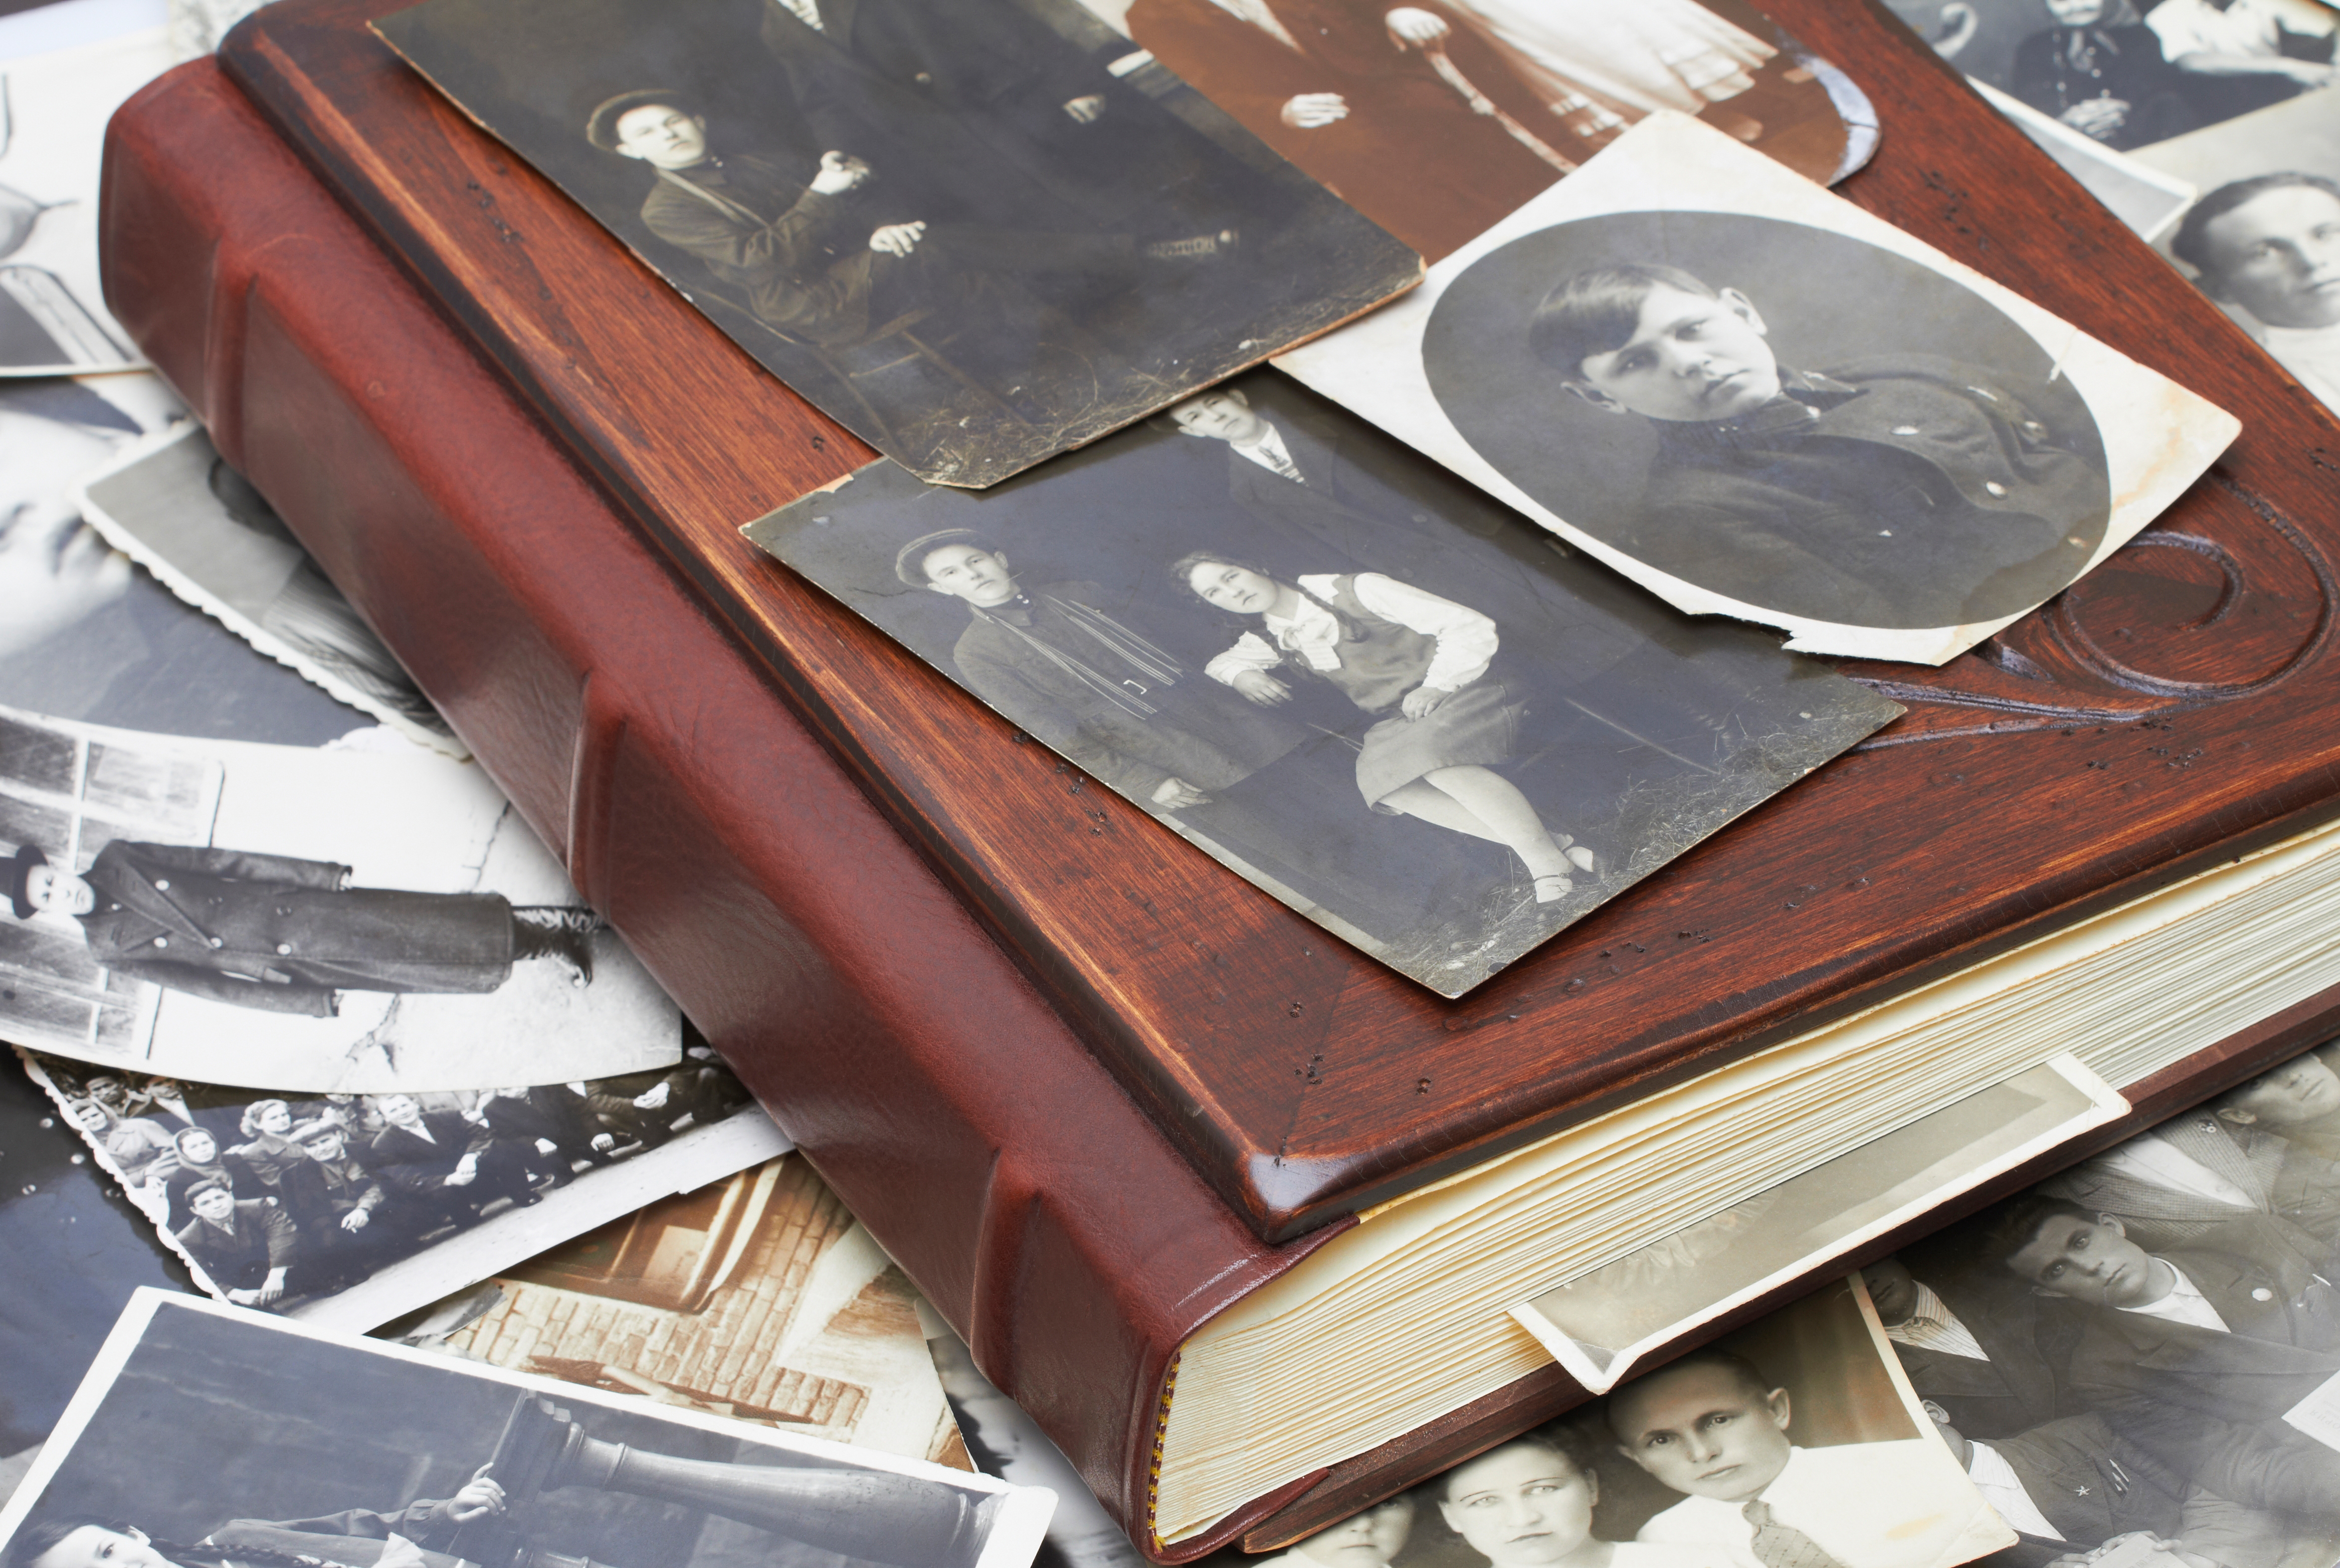 Leather and wood photo album, with black and white photographs.